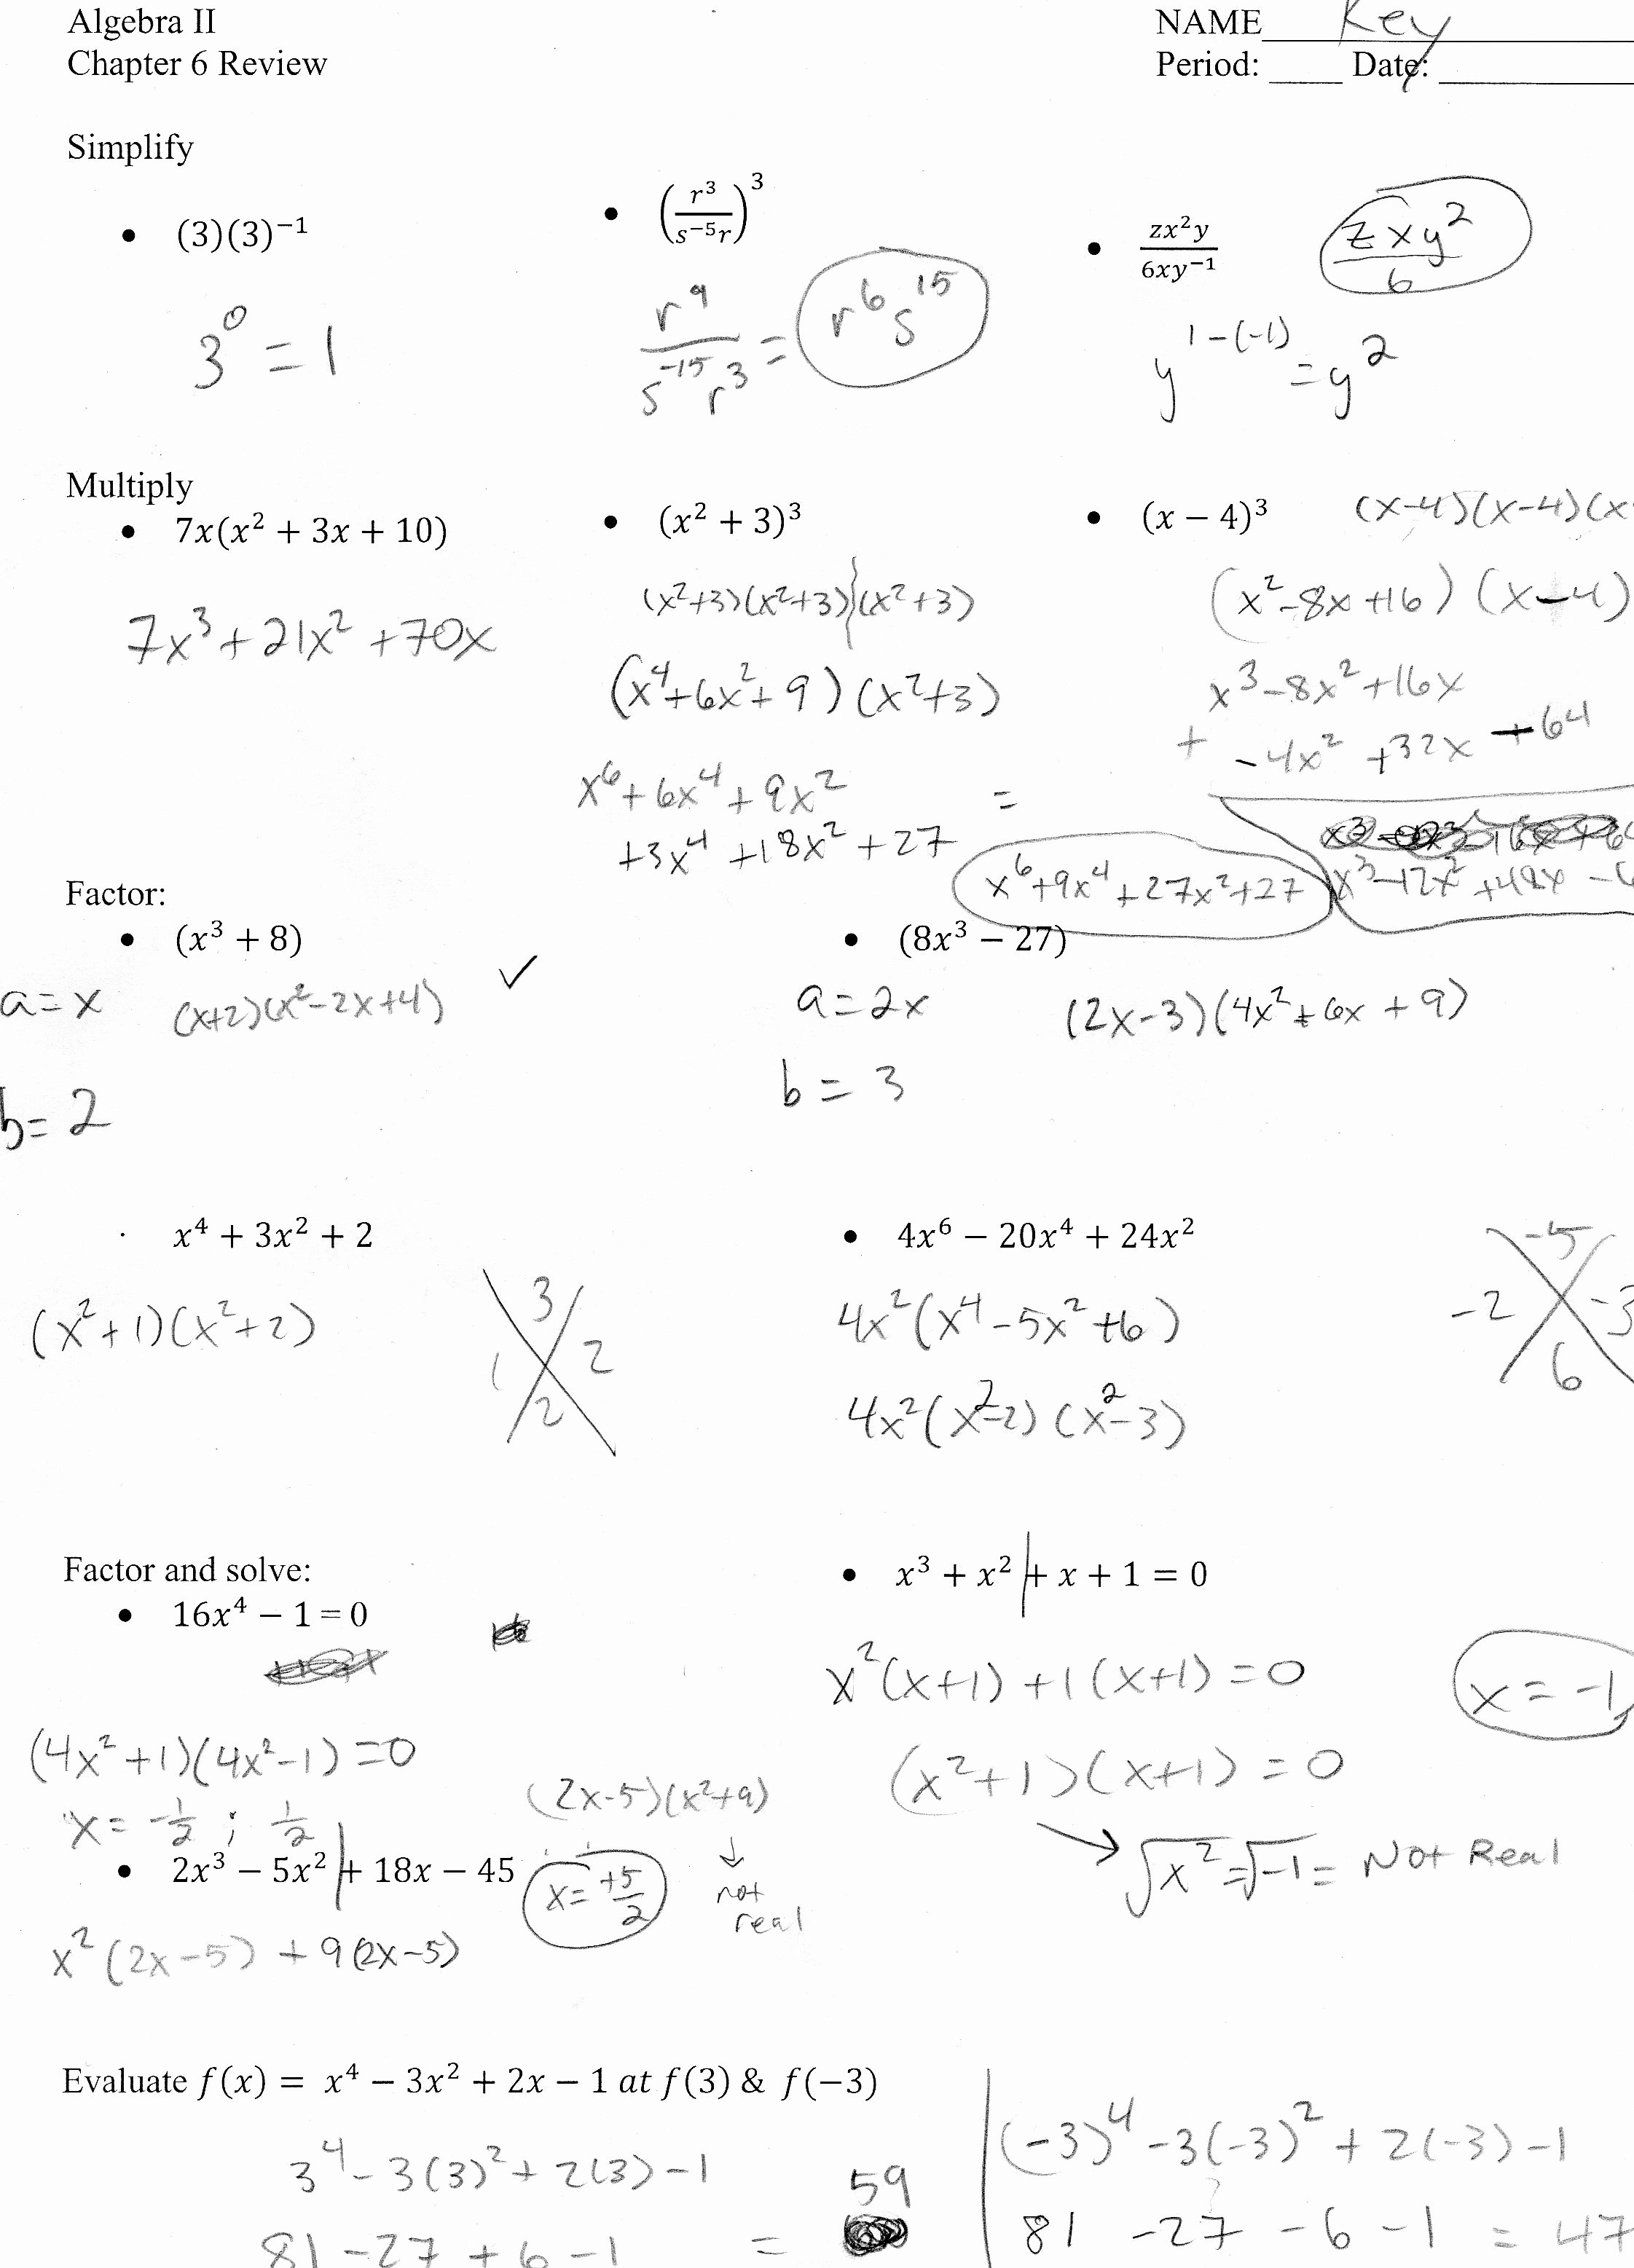 Algebra 2 Review Worksheet Fresh Algebra Ii Mr Shepherd S Pasture